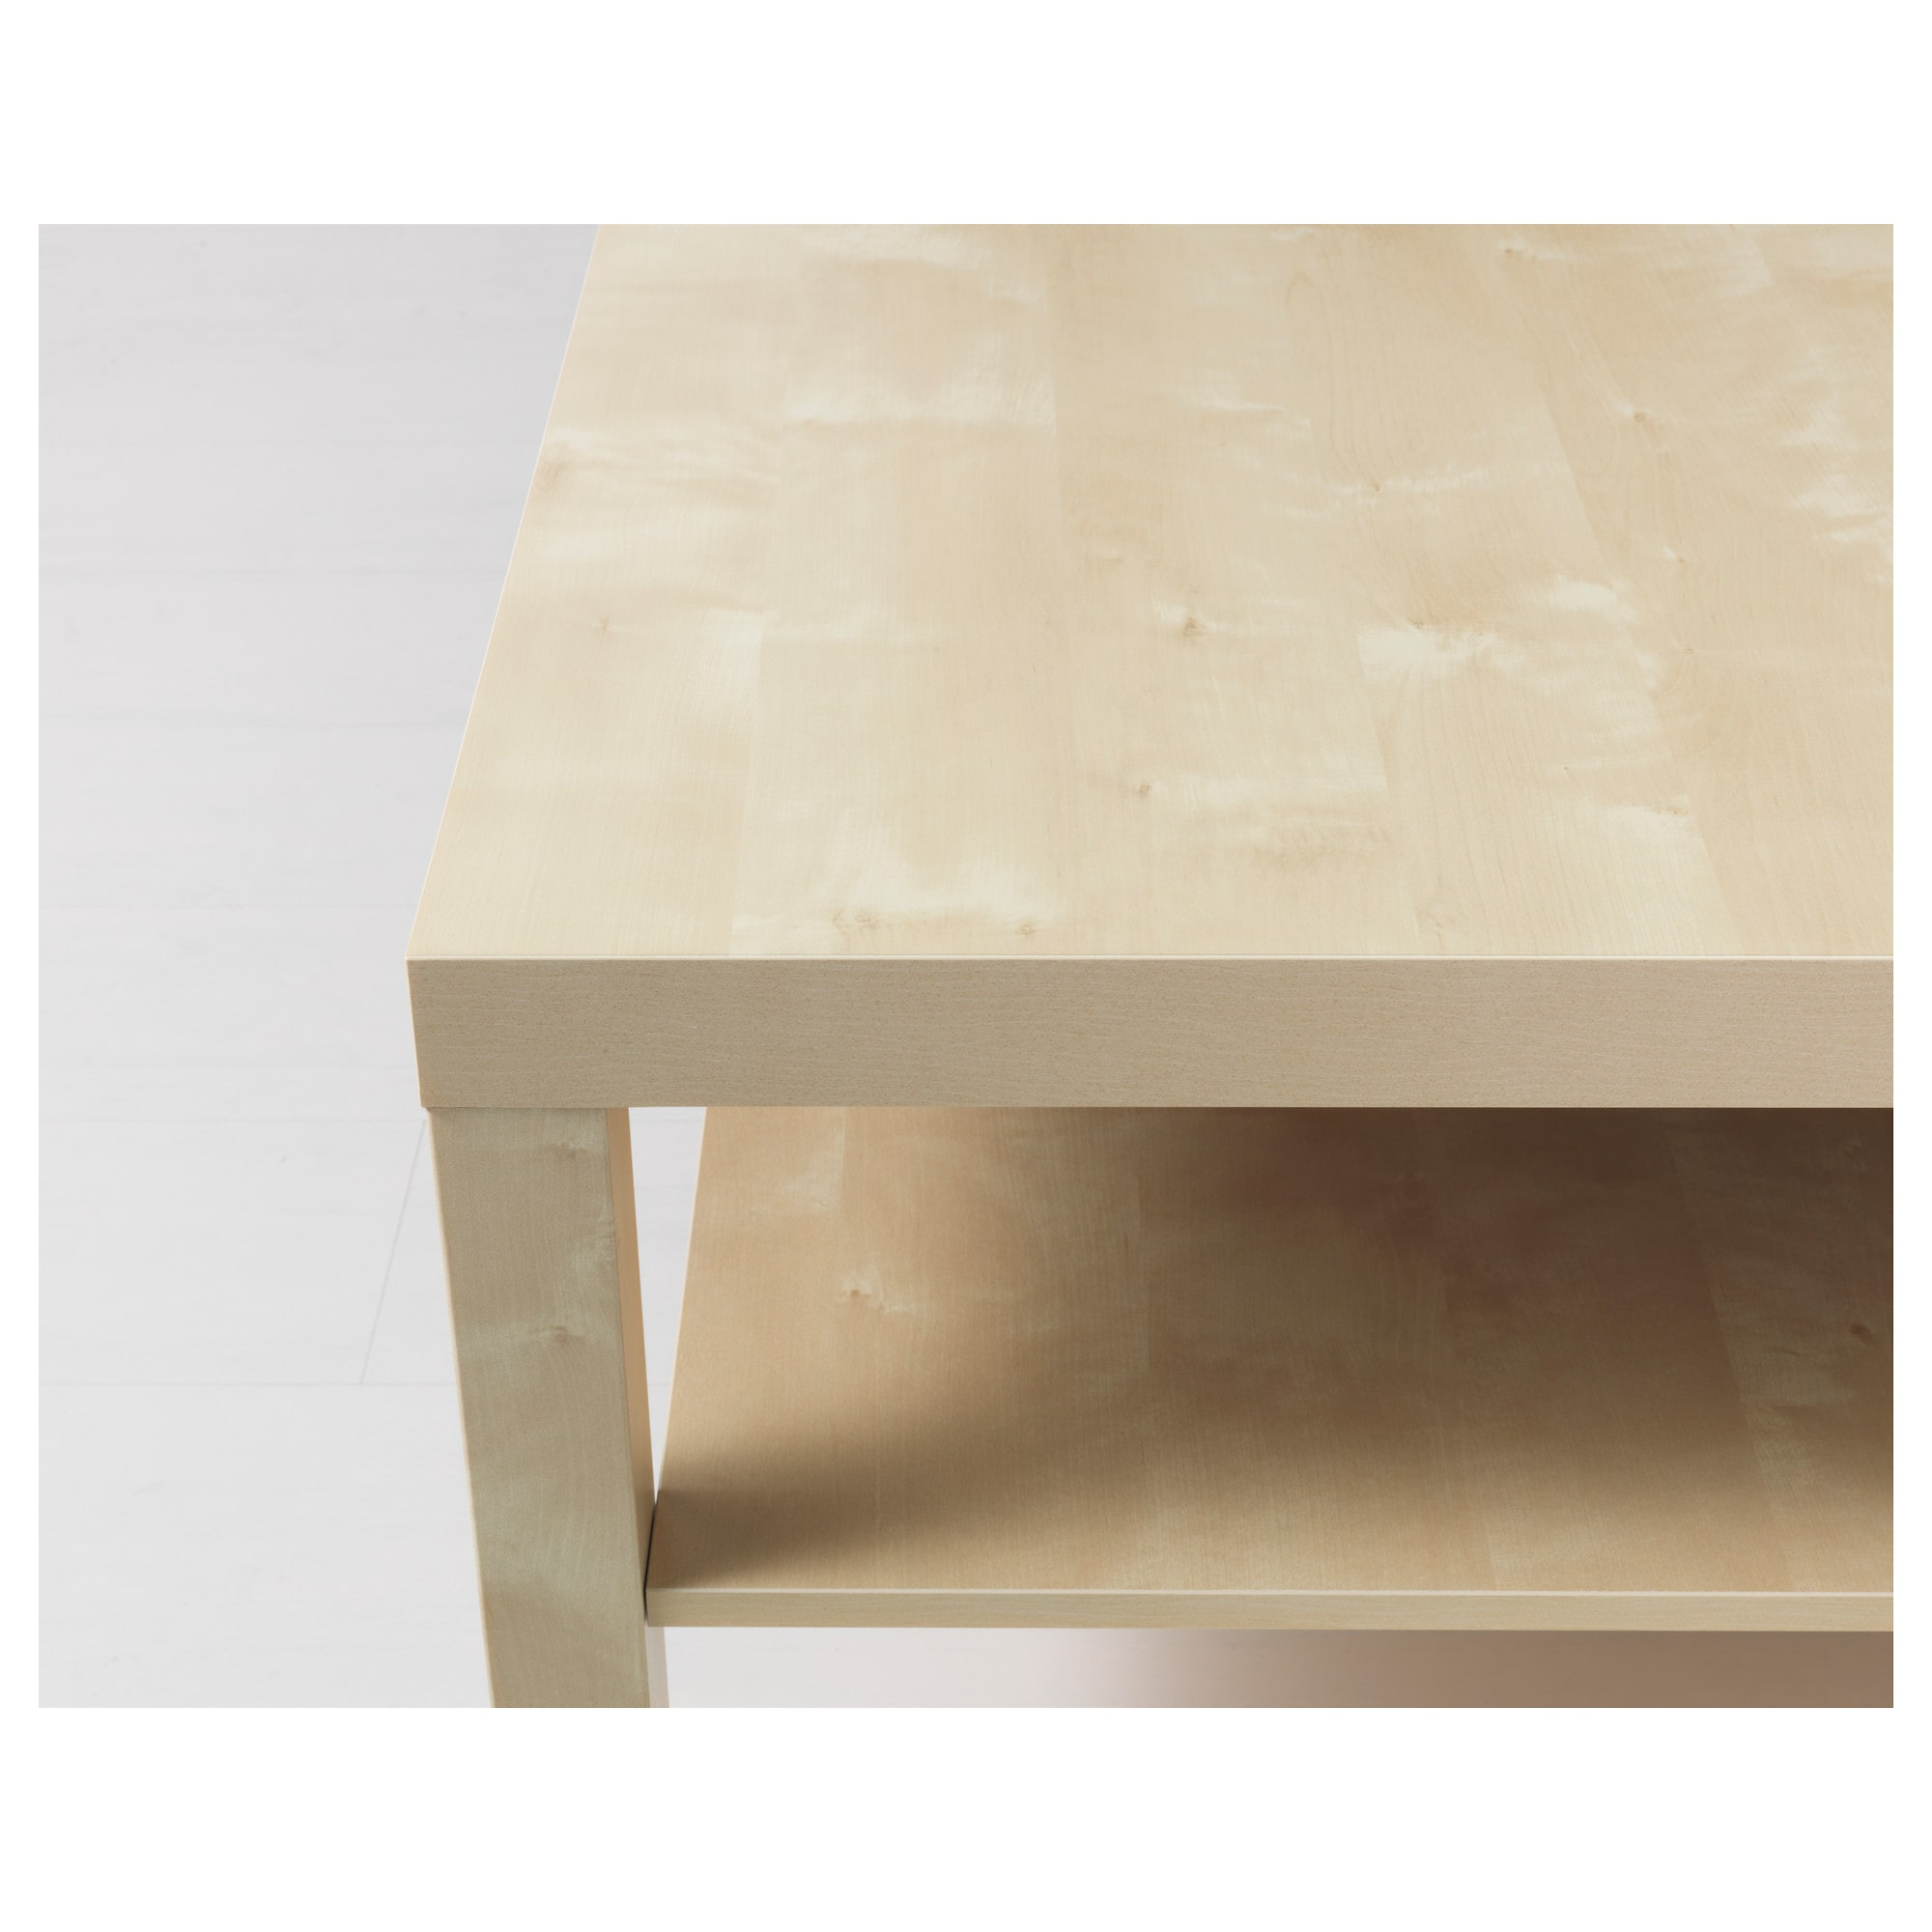 0258002_PE401977_S5 Incroyable De Table Basse Lack Ikea